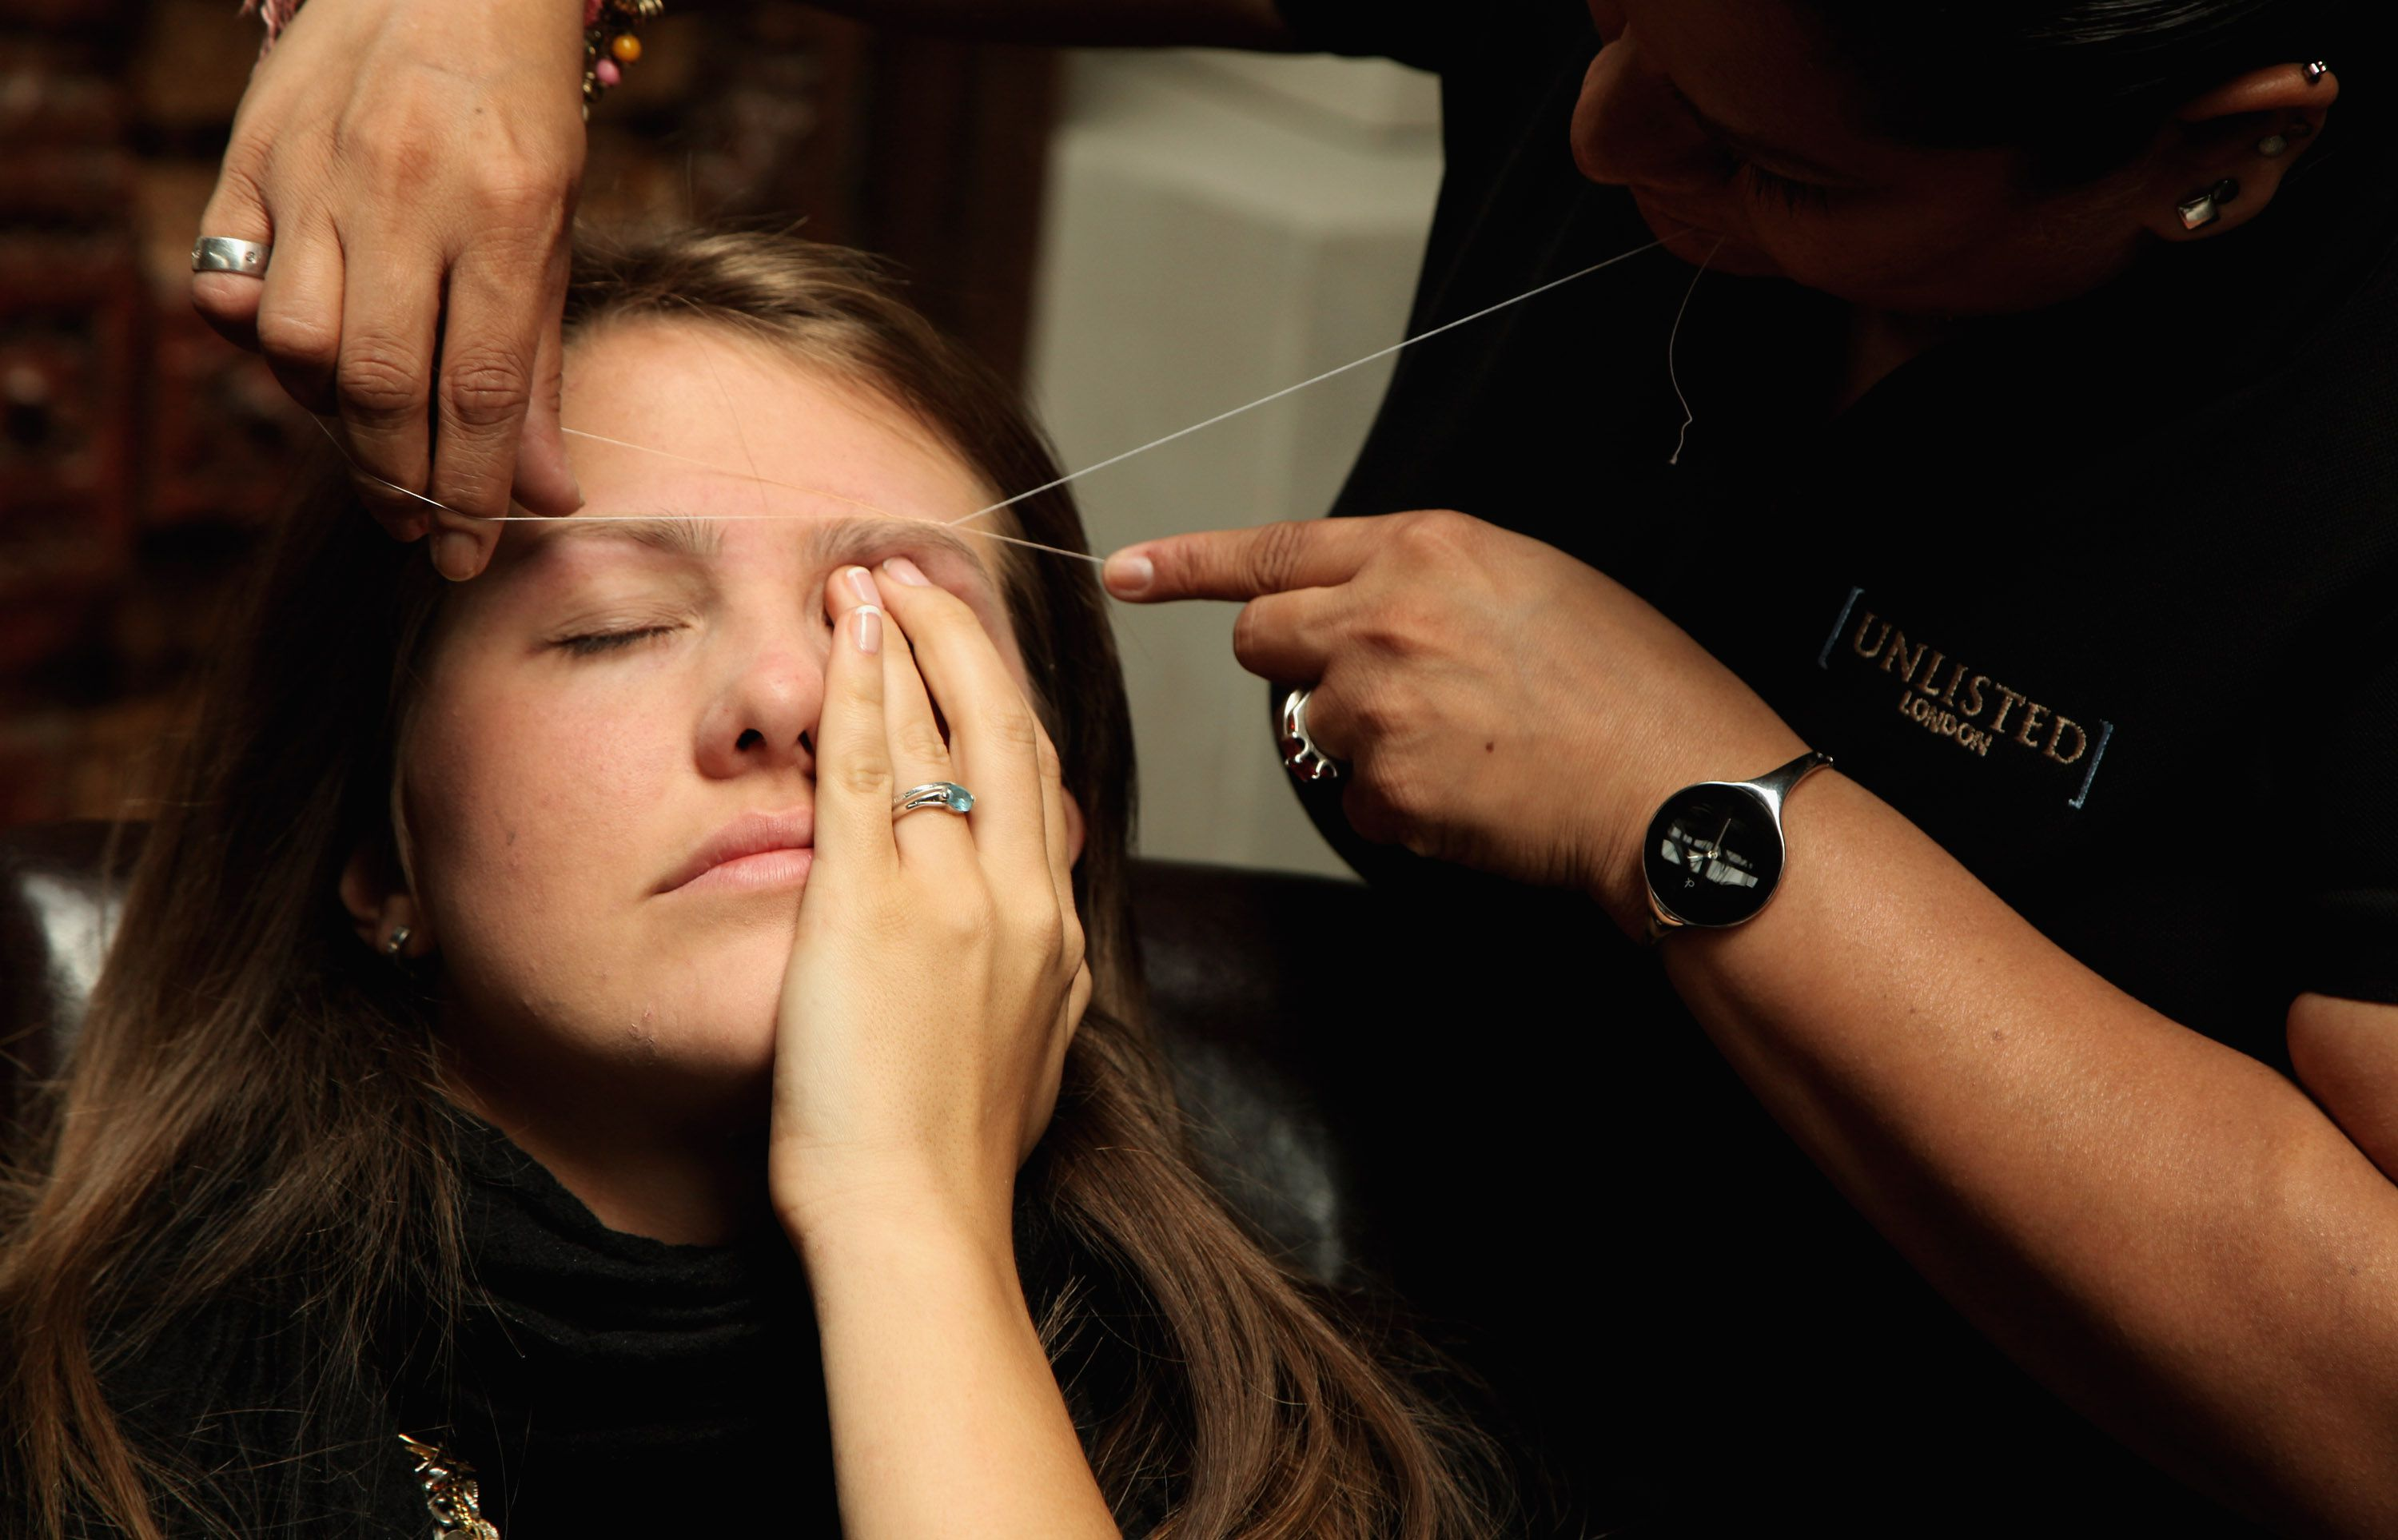 Threading Vs Waxing Eyebrows Pros And Cons